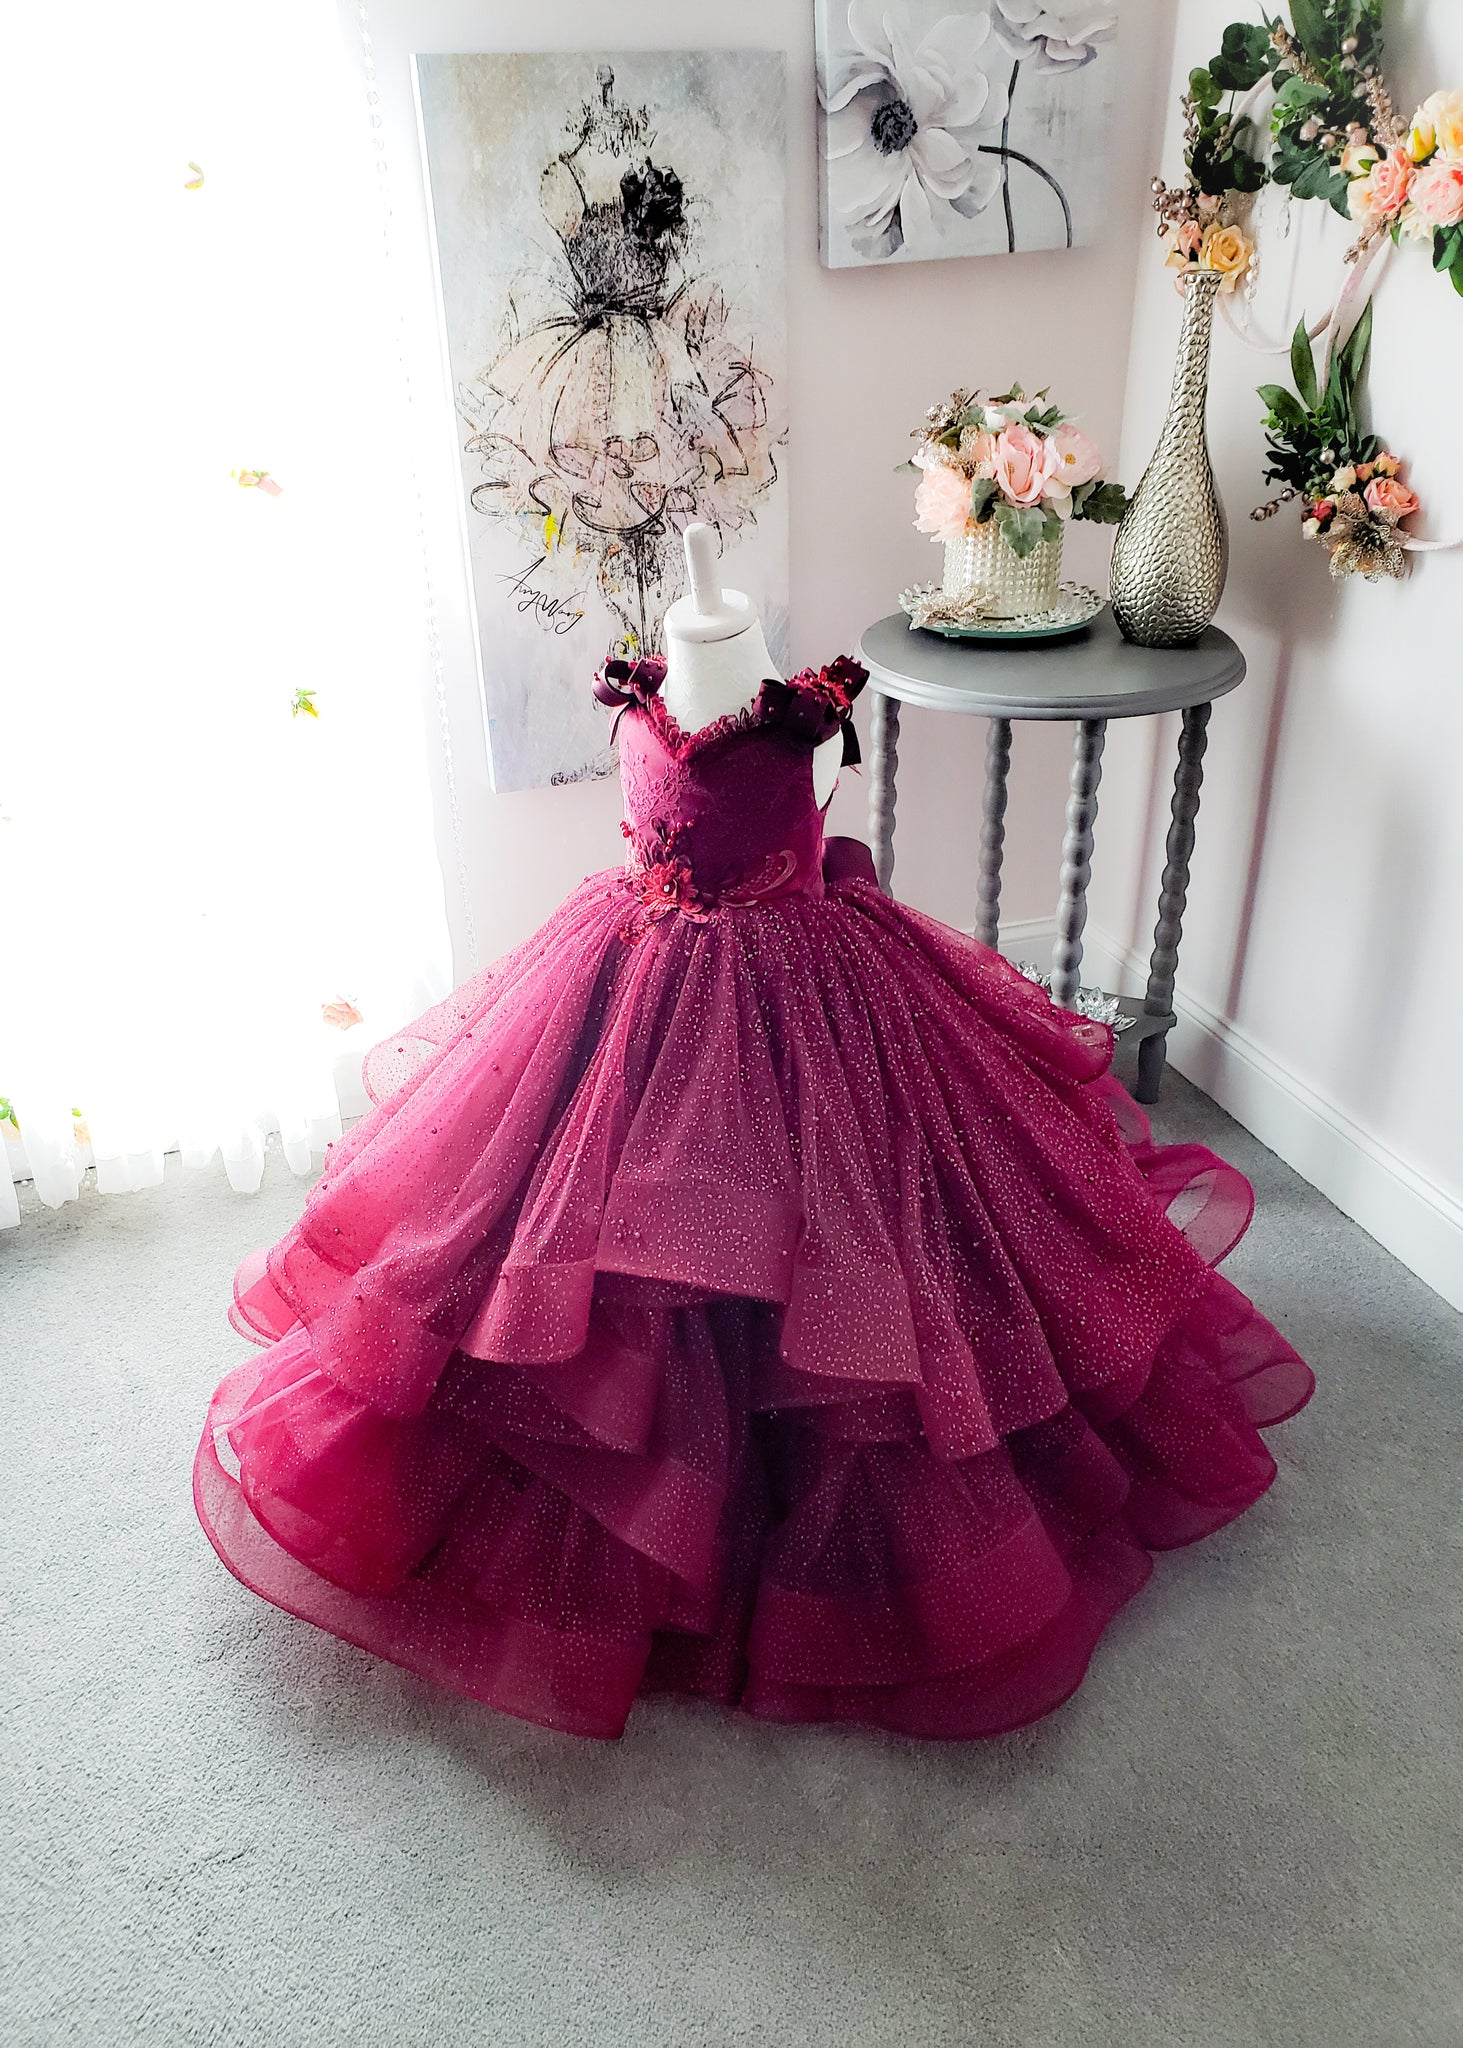 Holly Berry Gown